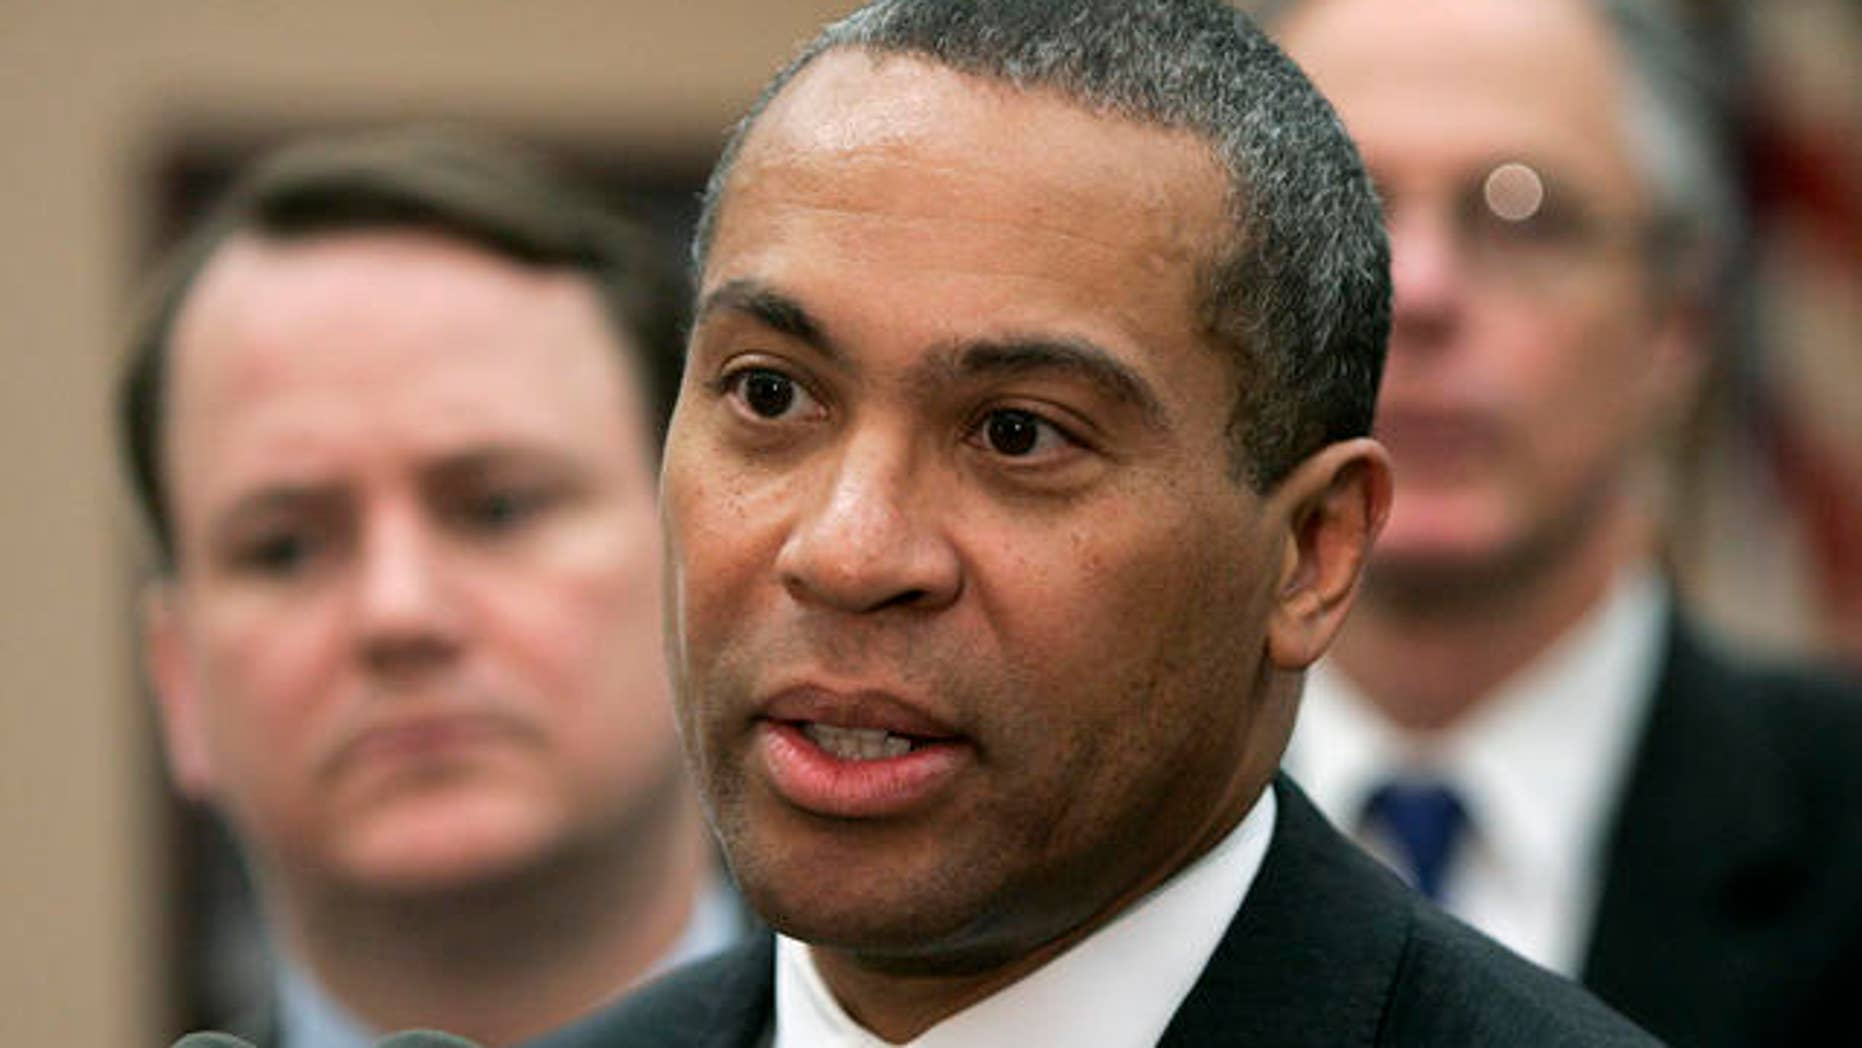 Deval Patrick enters the fight for the 2020 Democratic nomination